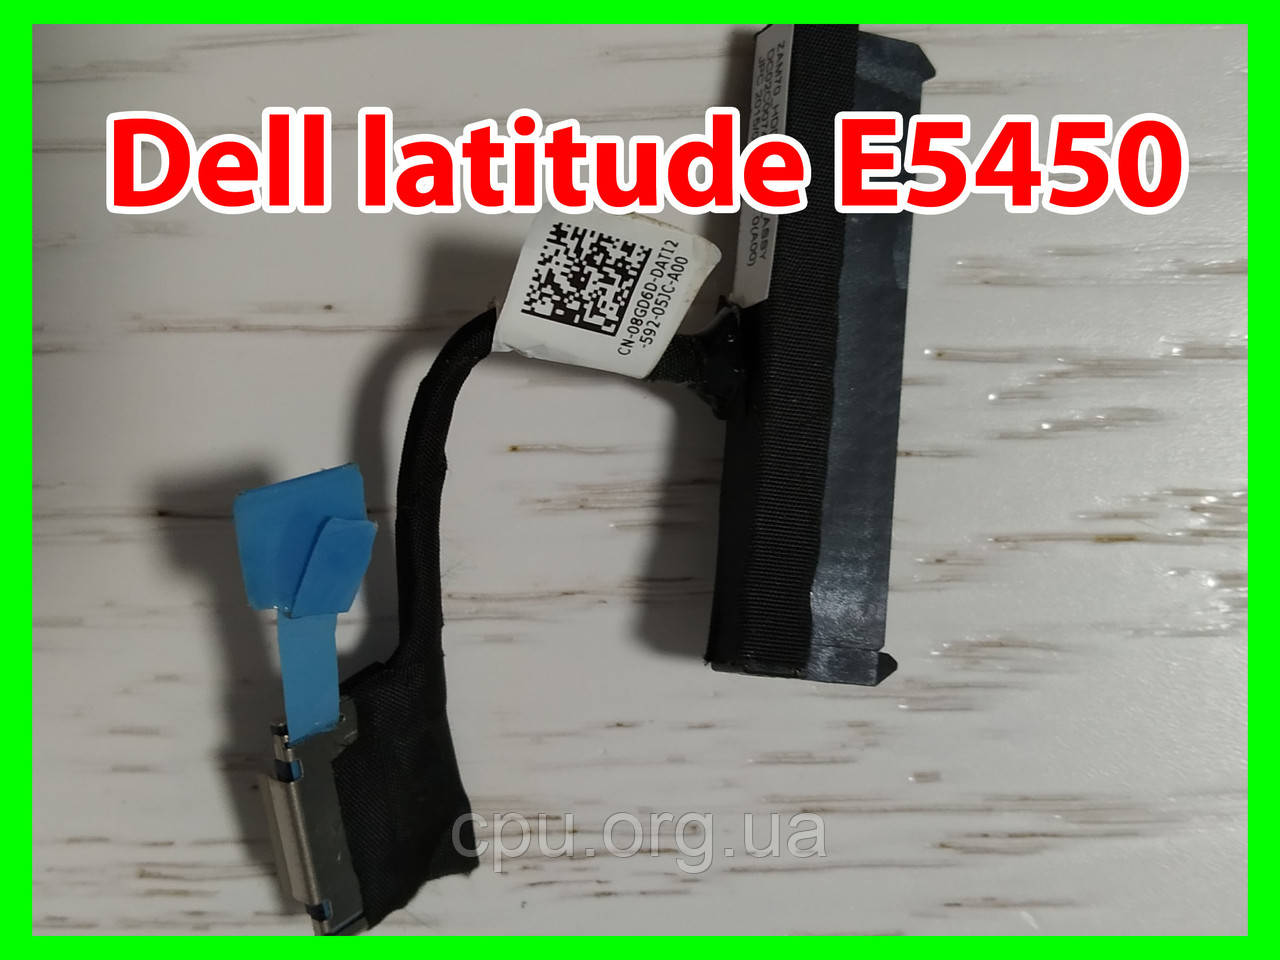 Dell Latitude E5450 hdd cable кабель шлейф hdd жесткого диска Sata Сата